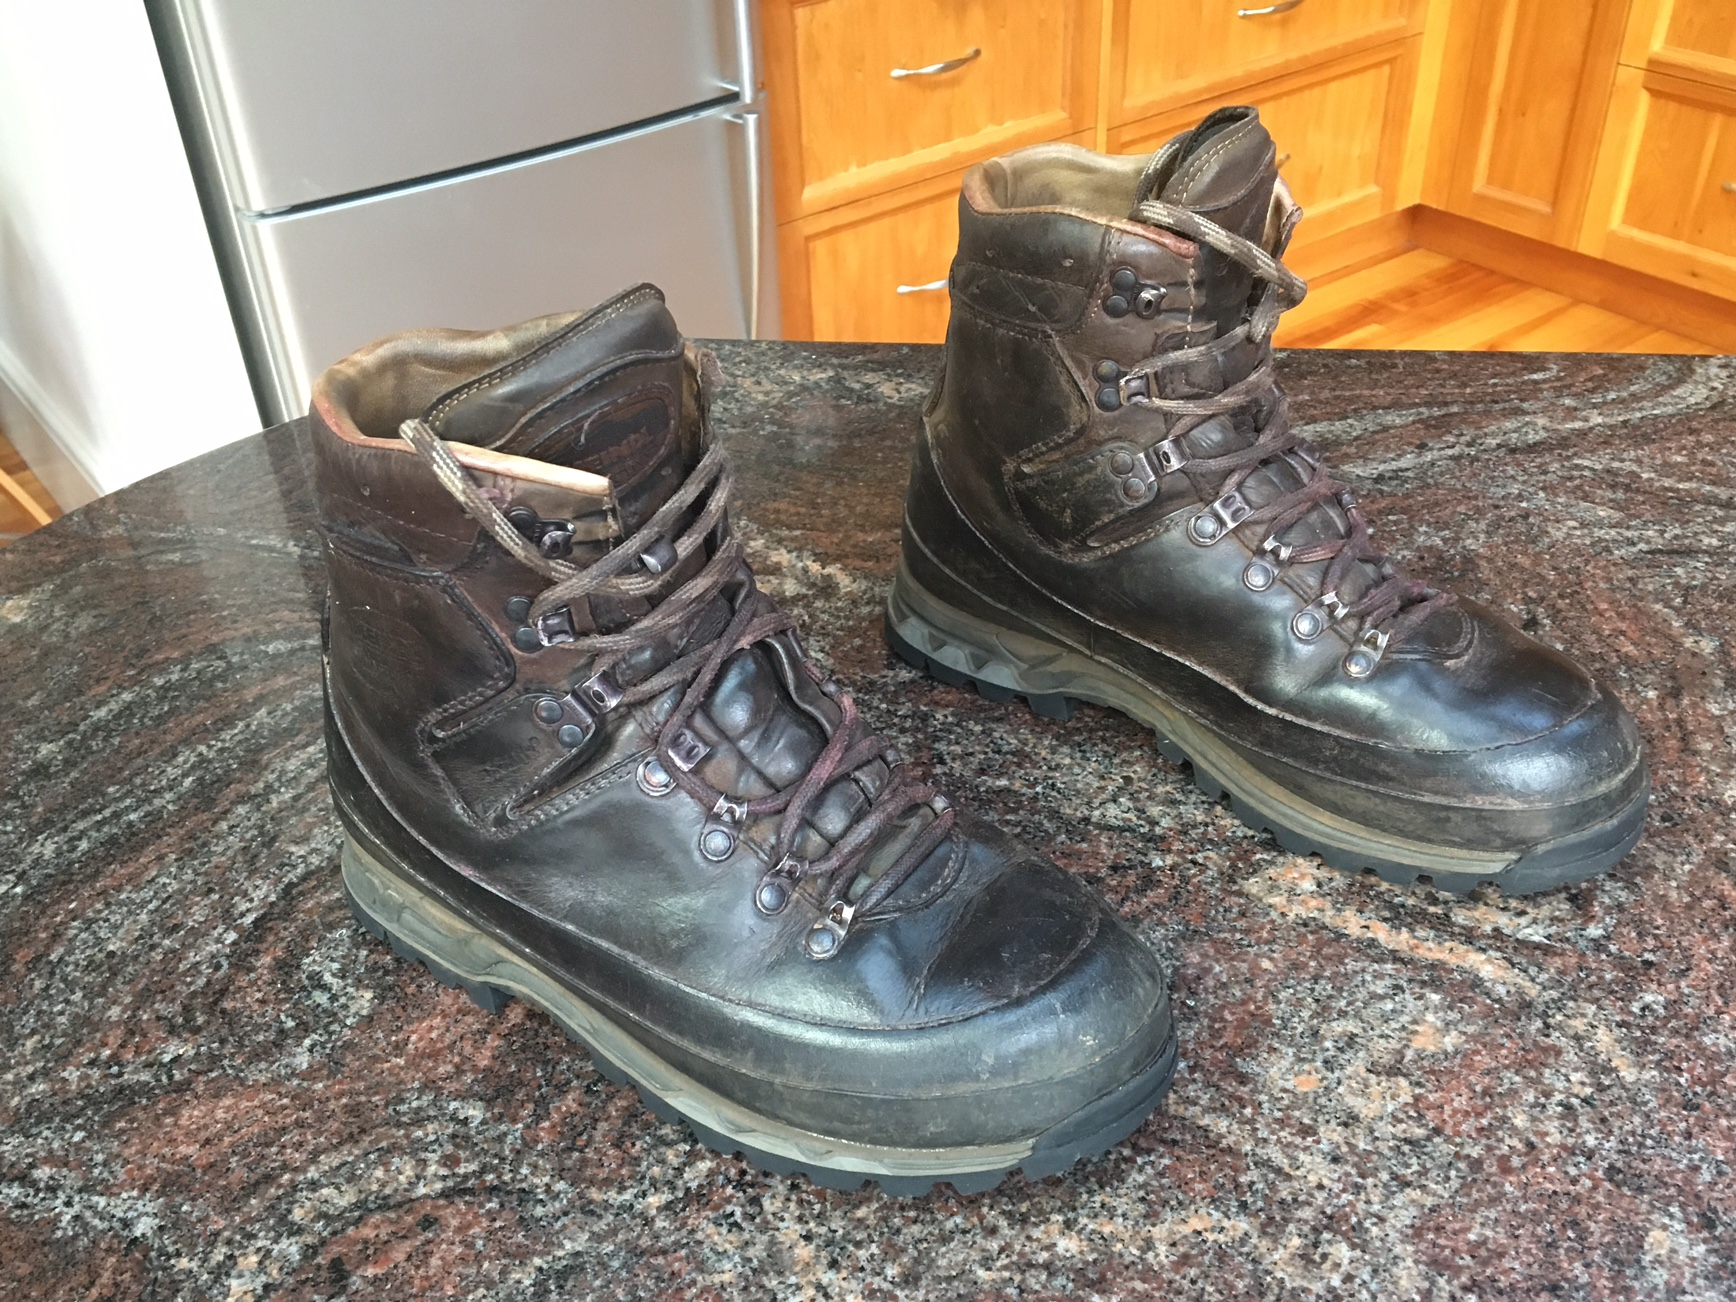 100% genuine multiple colors official supplier SOLD: Meindl hiking/mountain boots - thesarvo - thesarvo